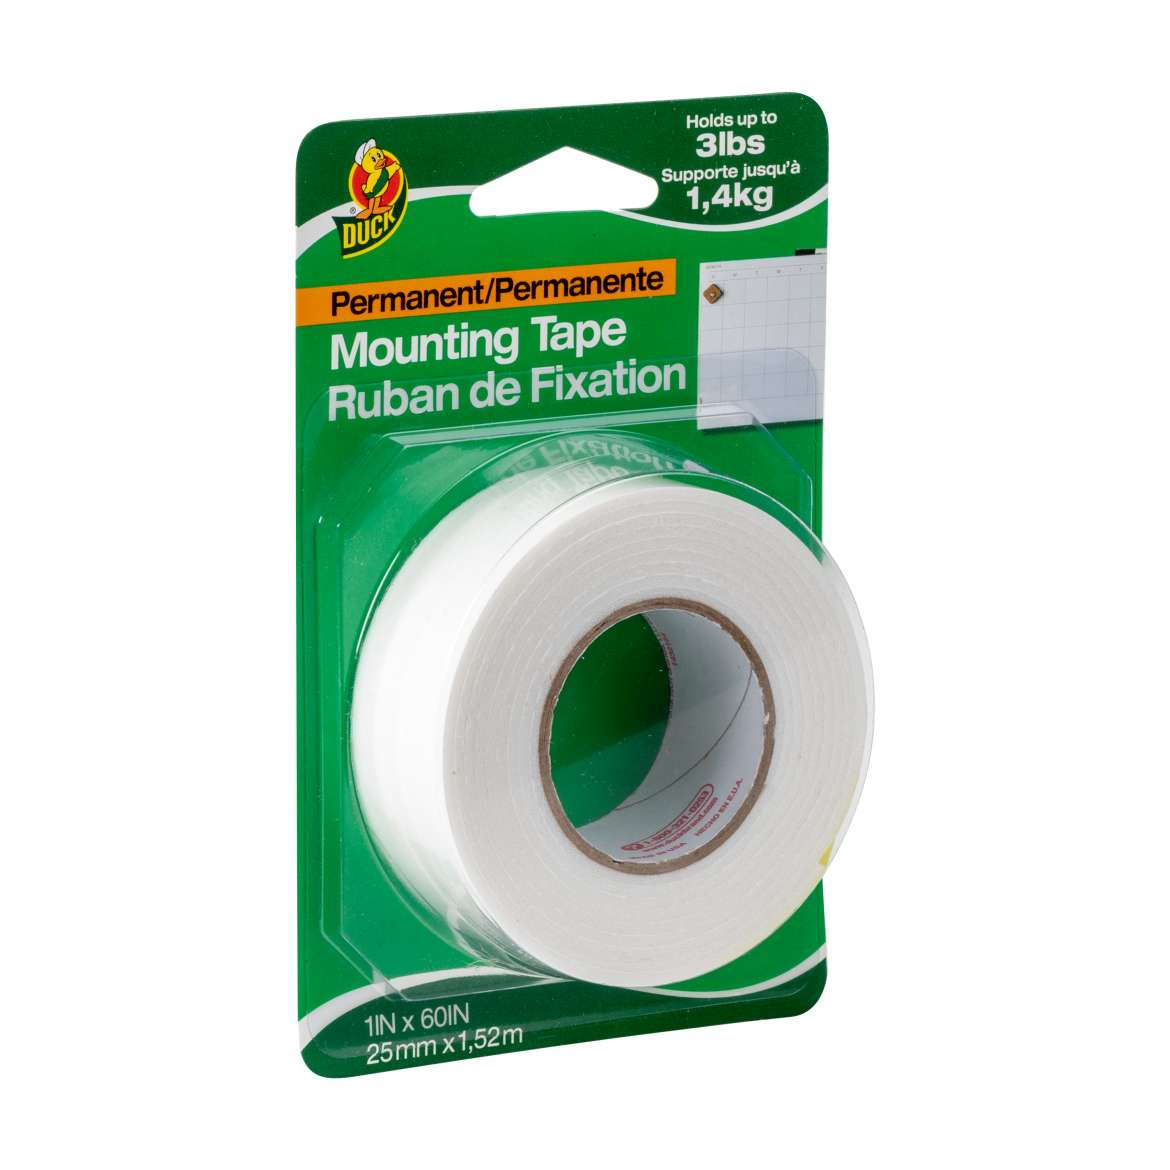 Permanent Mounting Tape Image